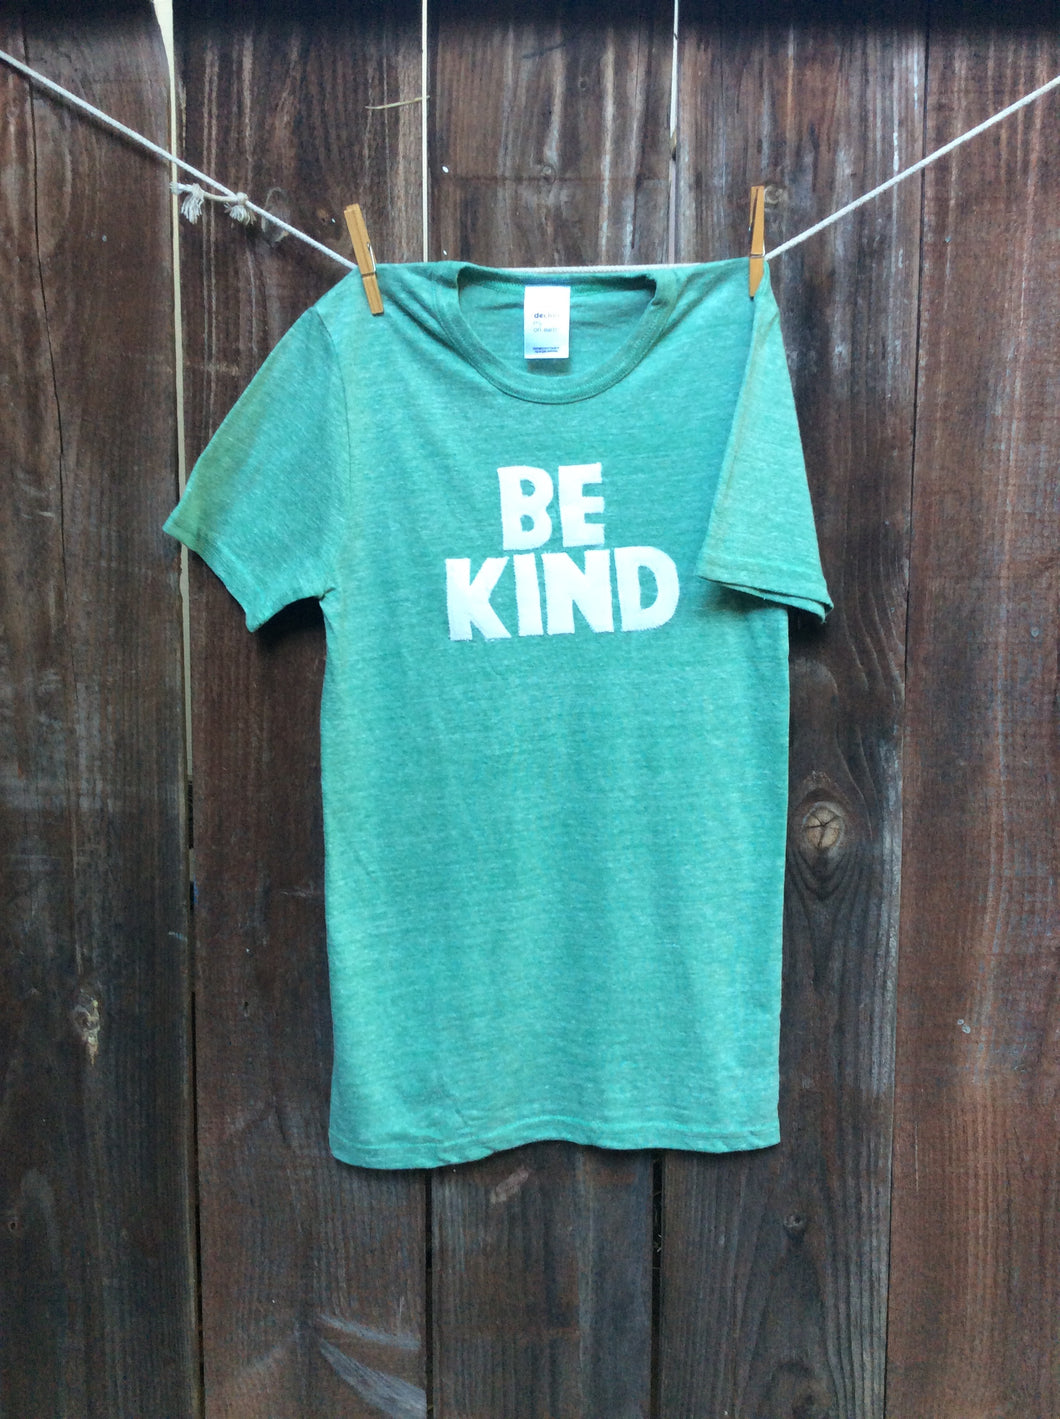 Unisex BE KIND Tee for my friend Stacy